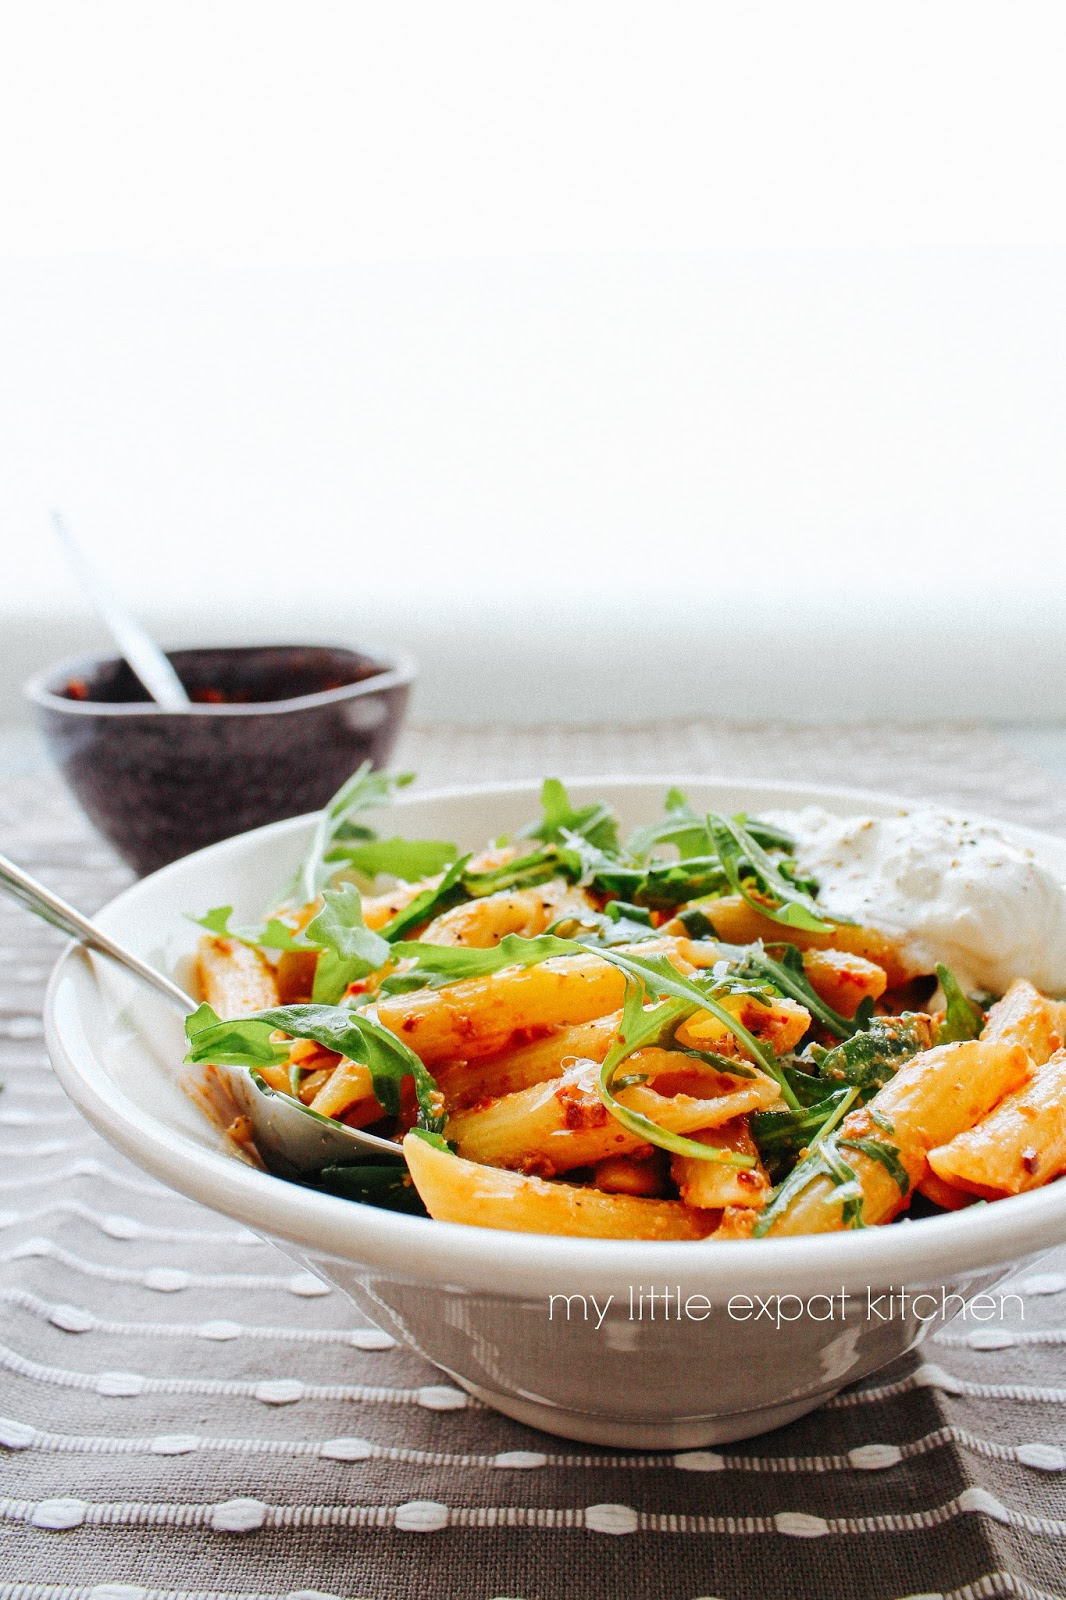 My Little Expat Kitchen: Penne with sun-dried tomato, red chilli and ...